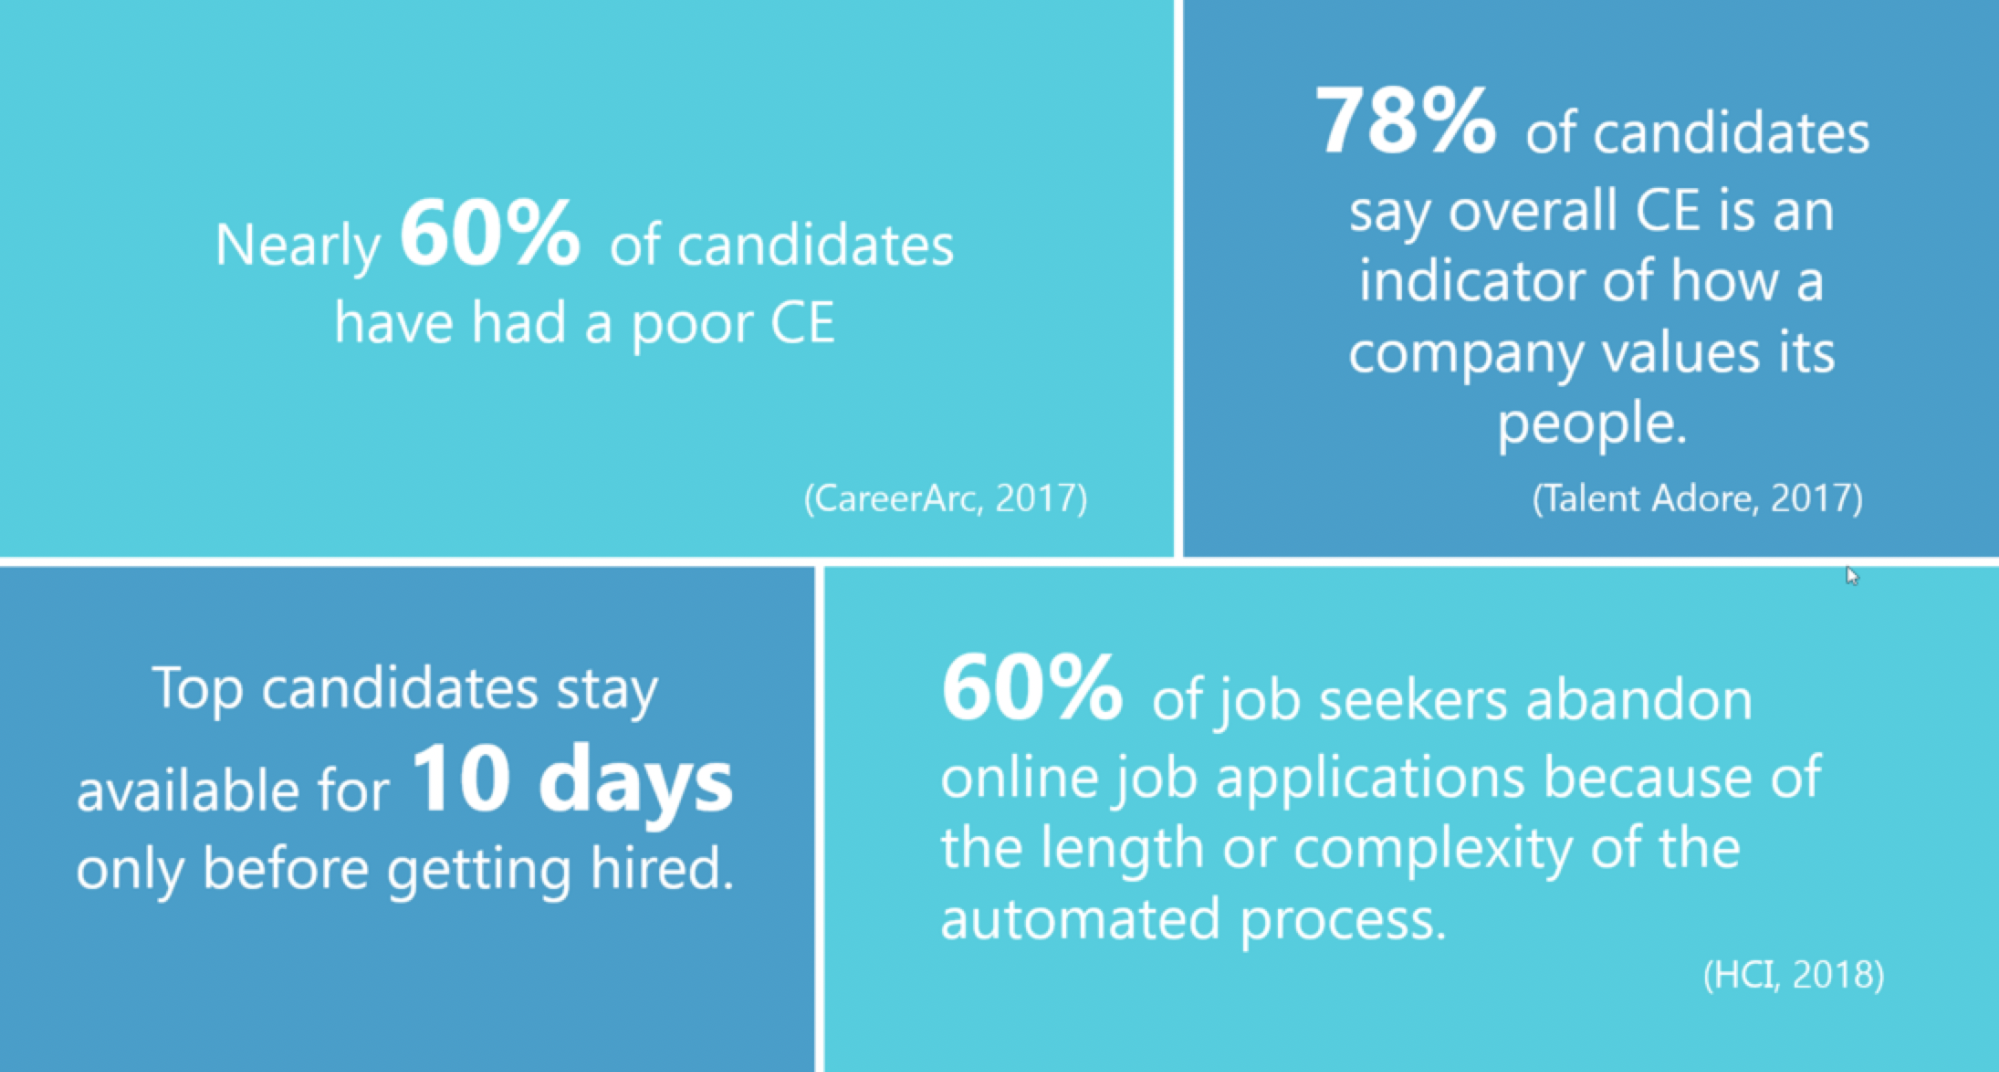 Think about how you, as a job seeker, would feel about your company's candidate experience.